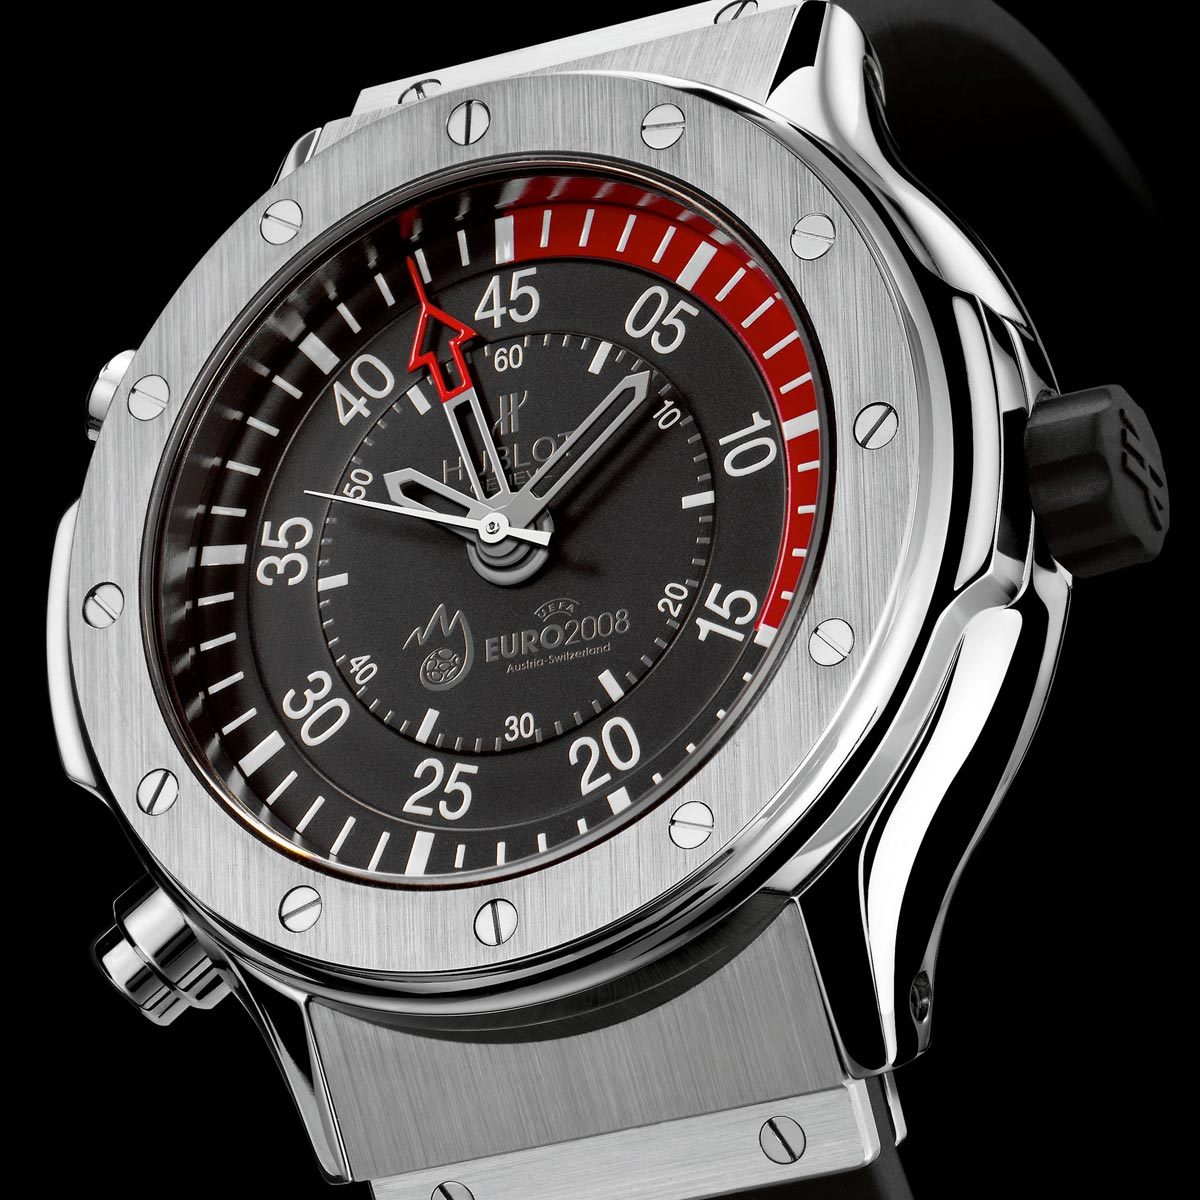 The Watch Quote: Photo - Hublot EURO 08 Chronometer